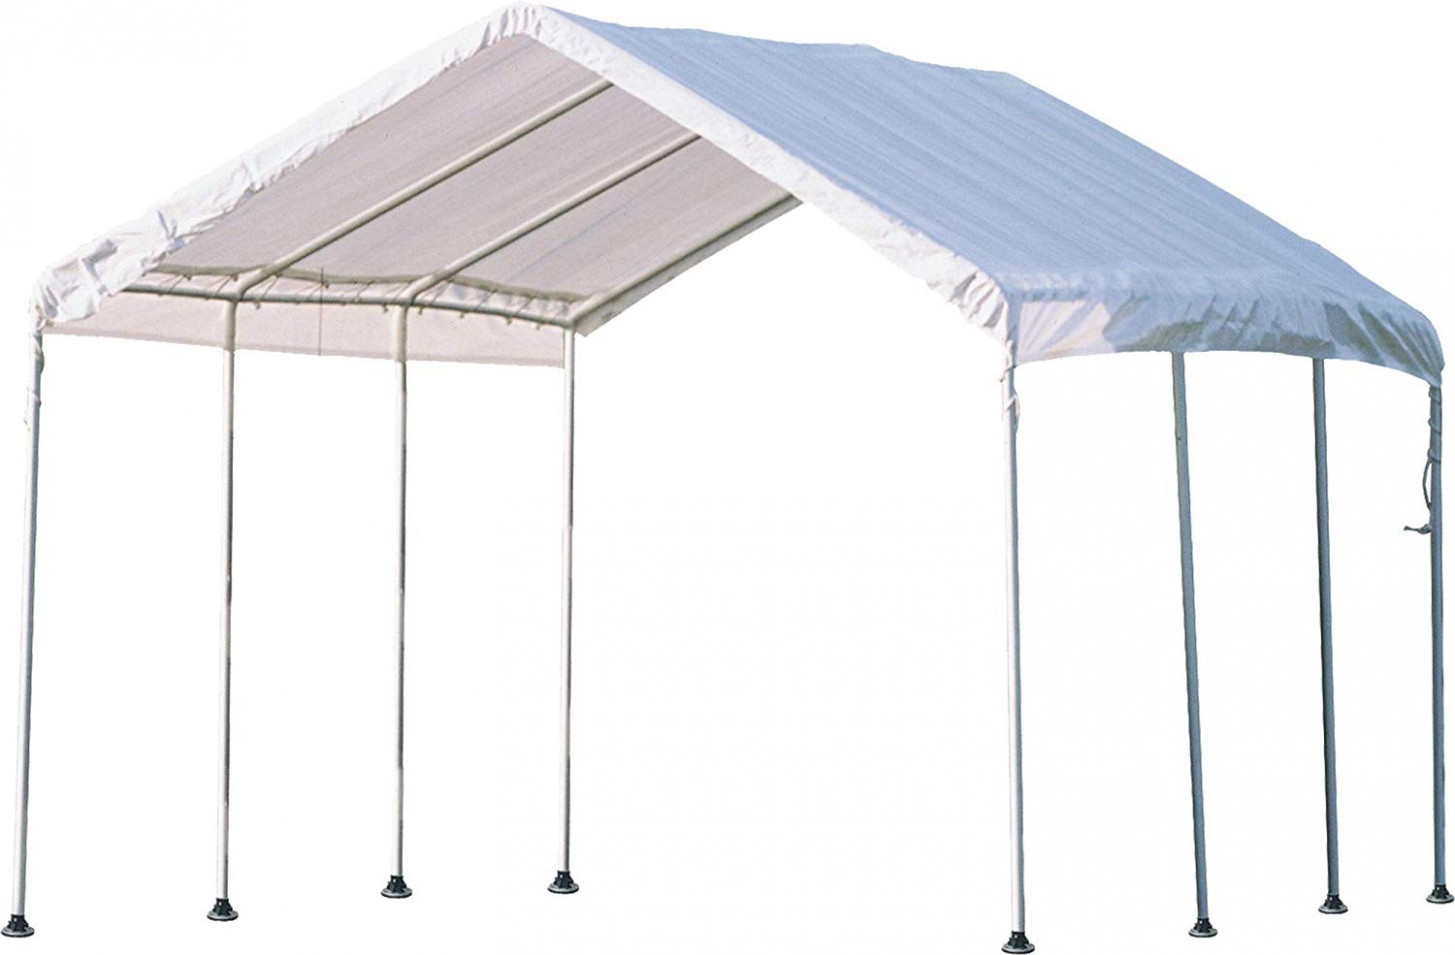 ShelterLogic 9′ X 9′ MaxAP Canopy Series Compact Outdoor Easy To Assemble Steel Metal Frame Canopy With 9+ UPF Sun Protection And Waterproof Cover Shelterlogic Max Ap Carport Canopy White